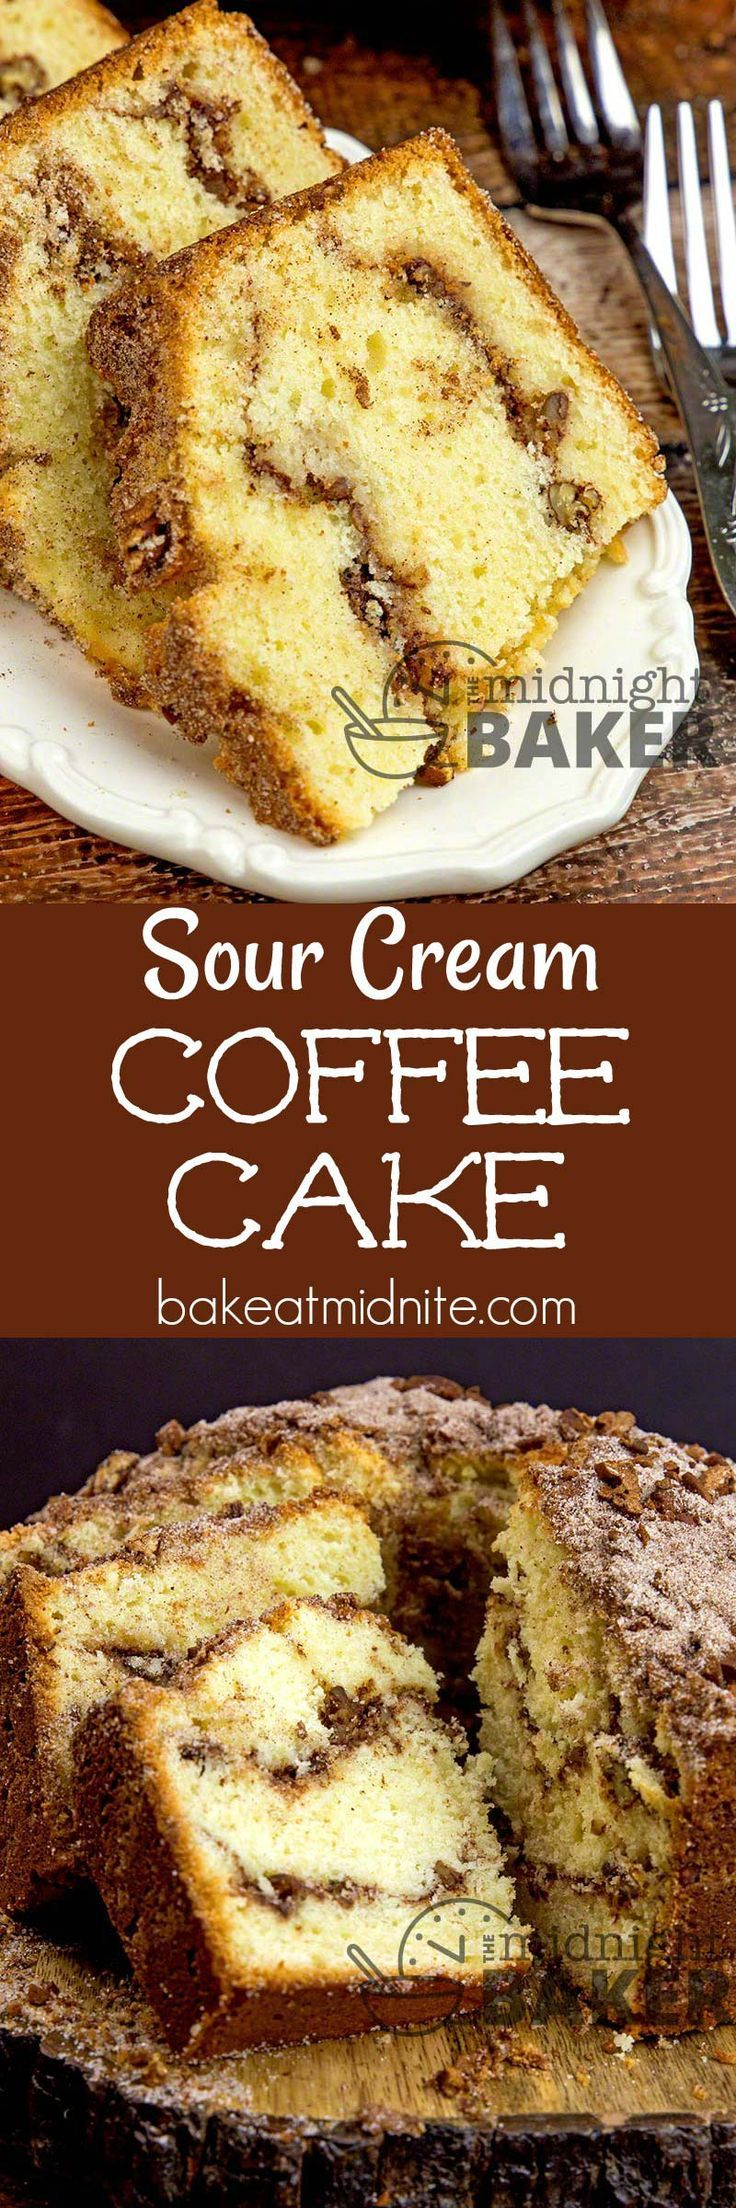 Sour cream keeps this delicious spicy and nutty coffee